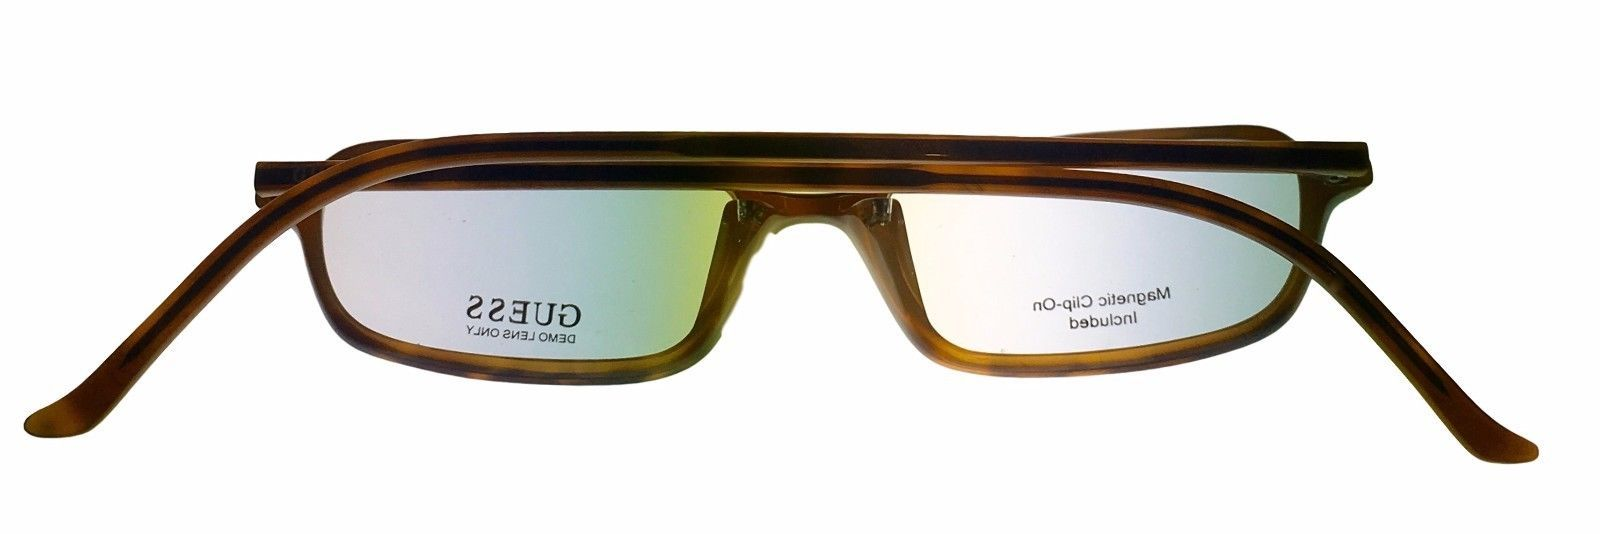 Guess Ophthalmic Mens Eyeglass Plastic Rectangle 1331 Demi Amber image 4